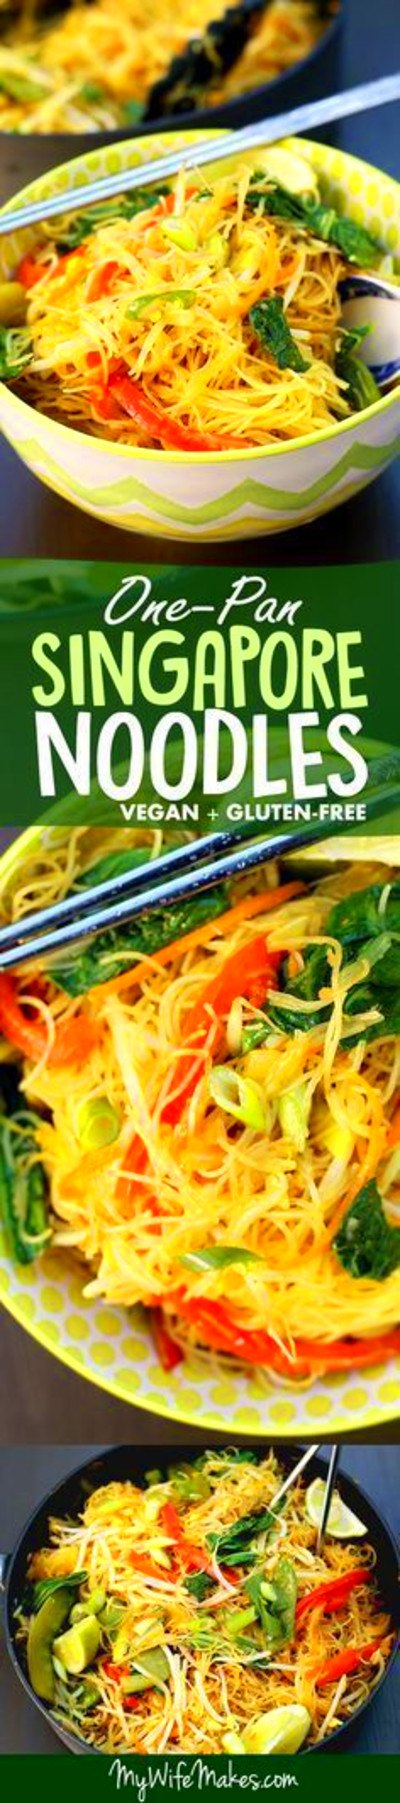 100+ Vermicelli recipes on Pinterest | Vermicelli noodles ...